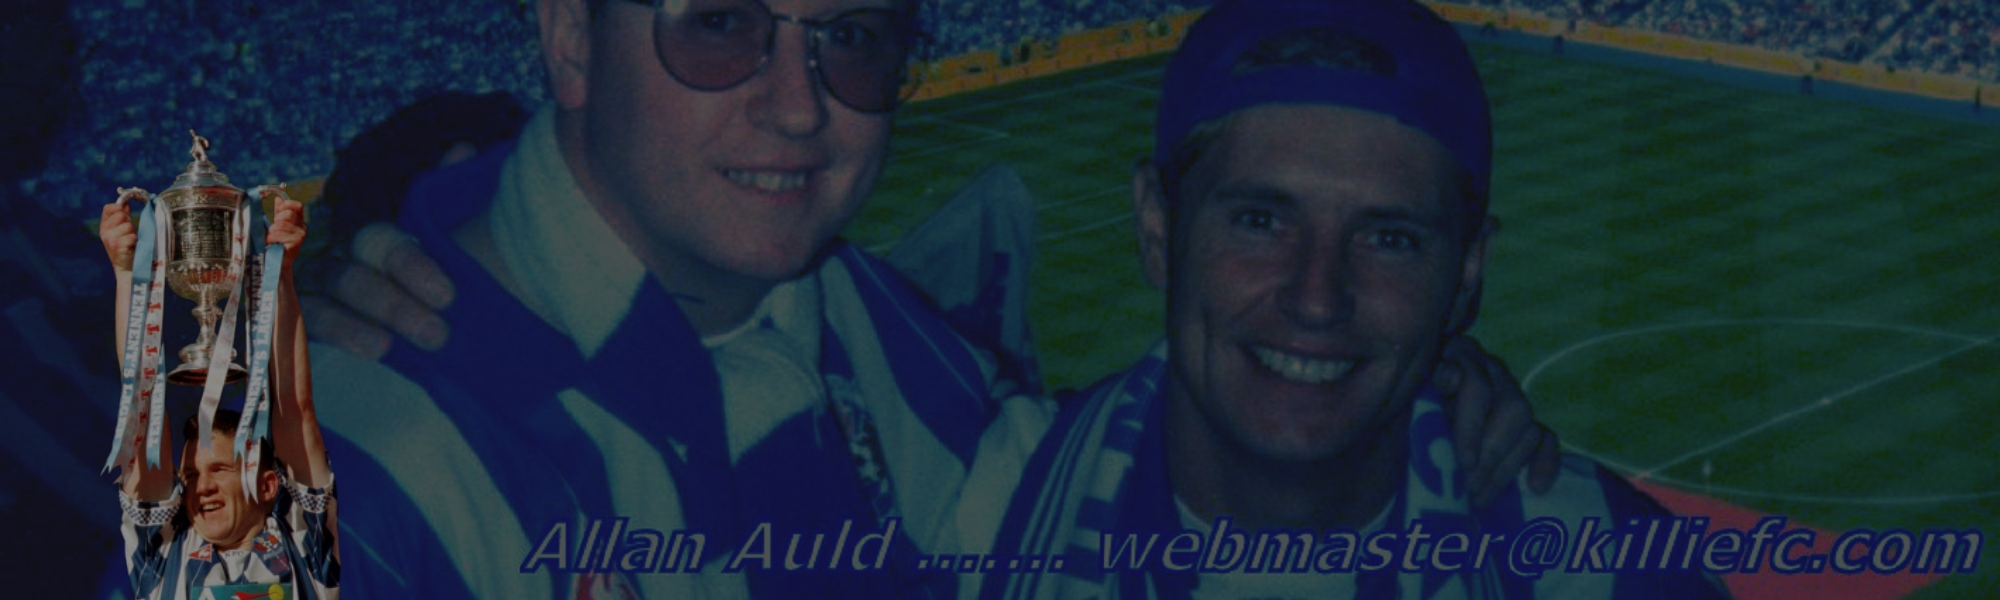 Andy & Allan Auld